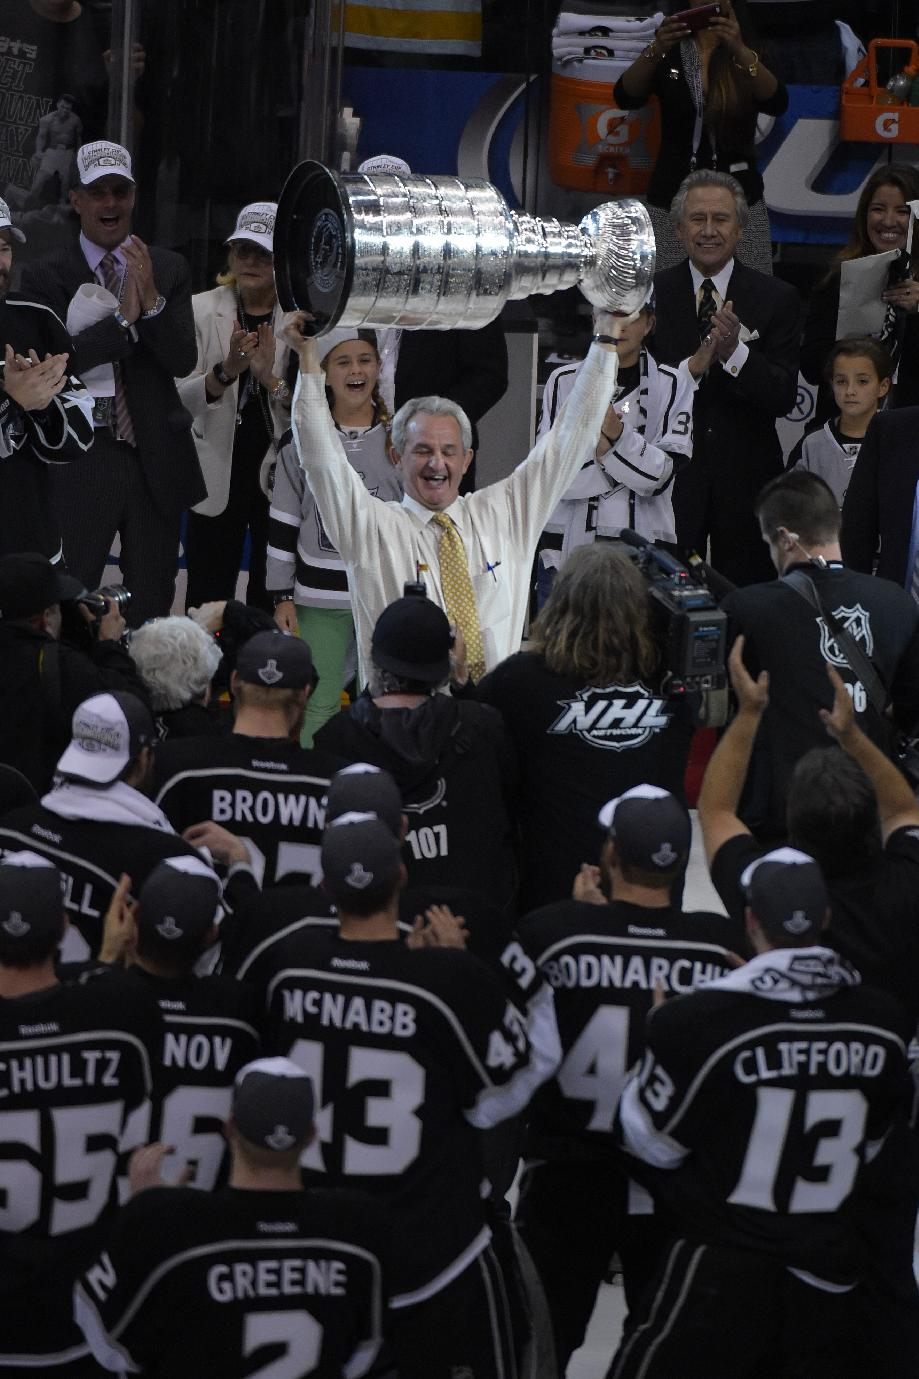 LA Kings celebrate 2nd title and plot 3rd run